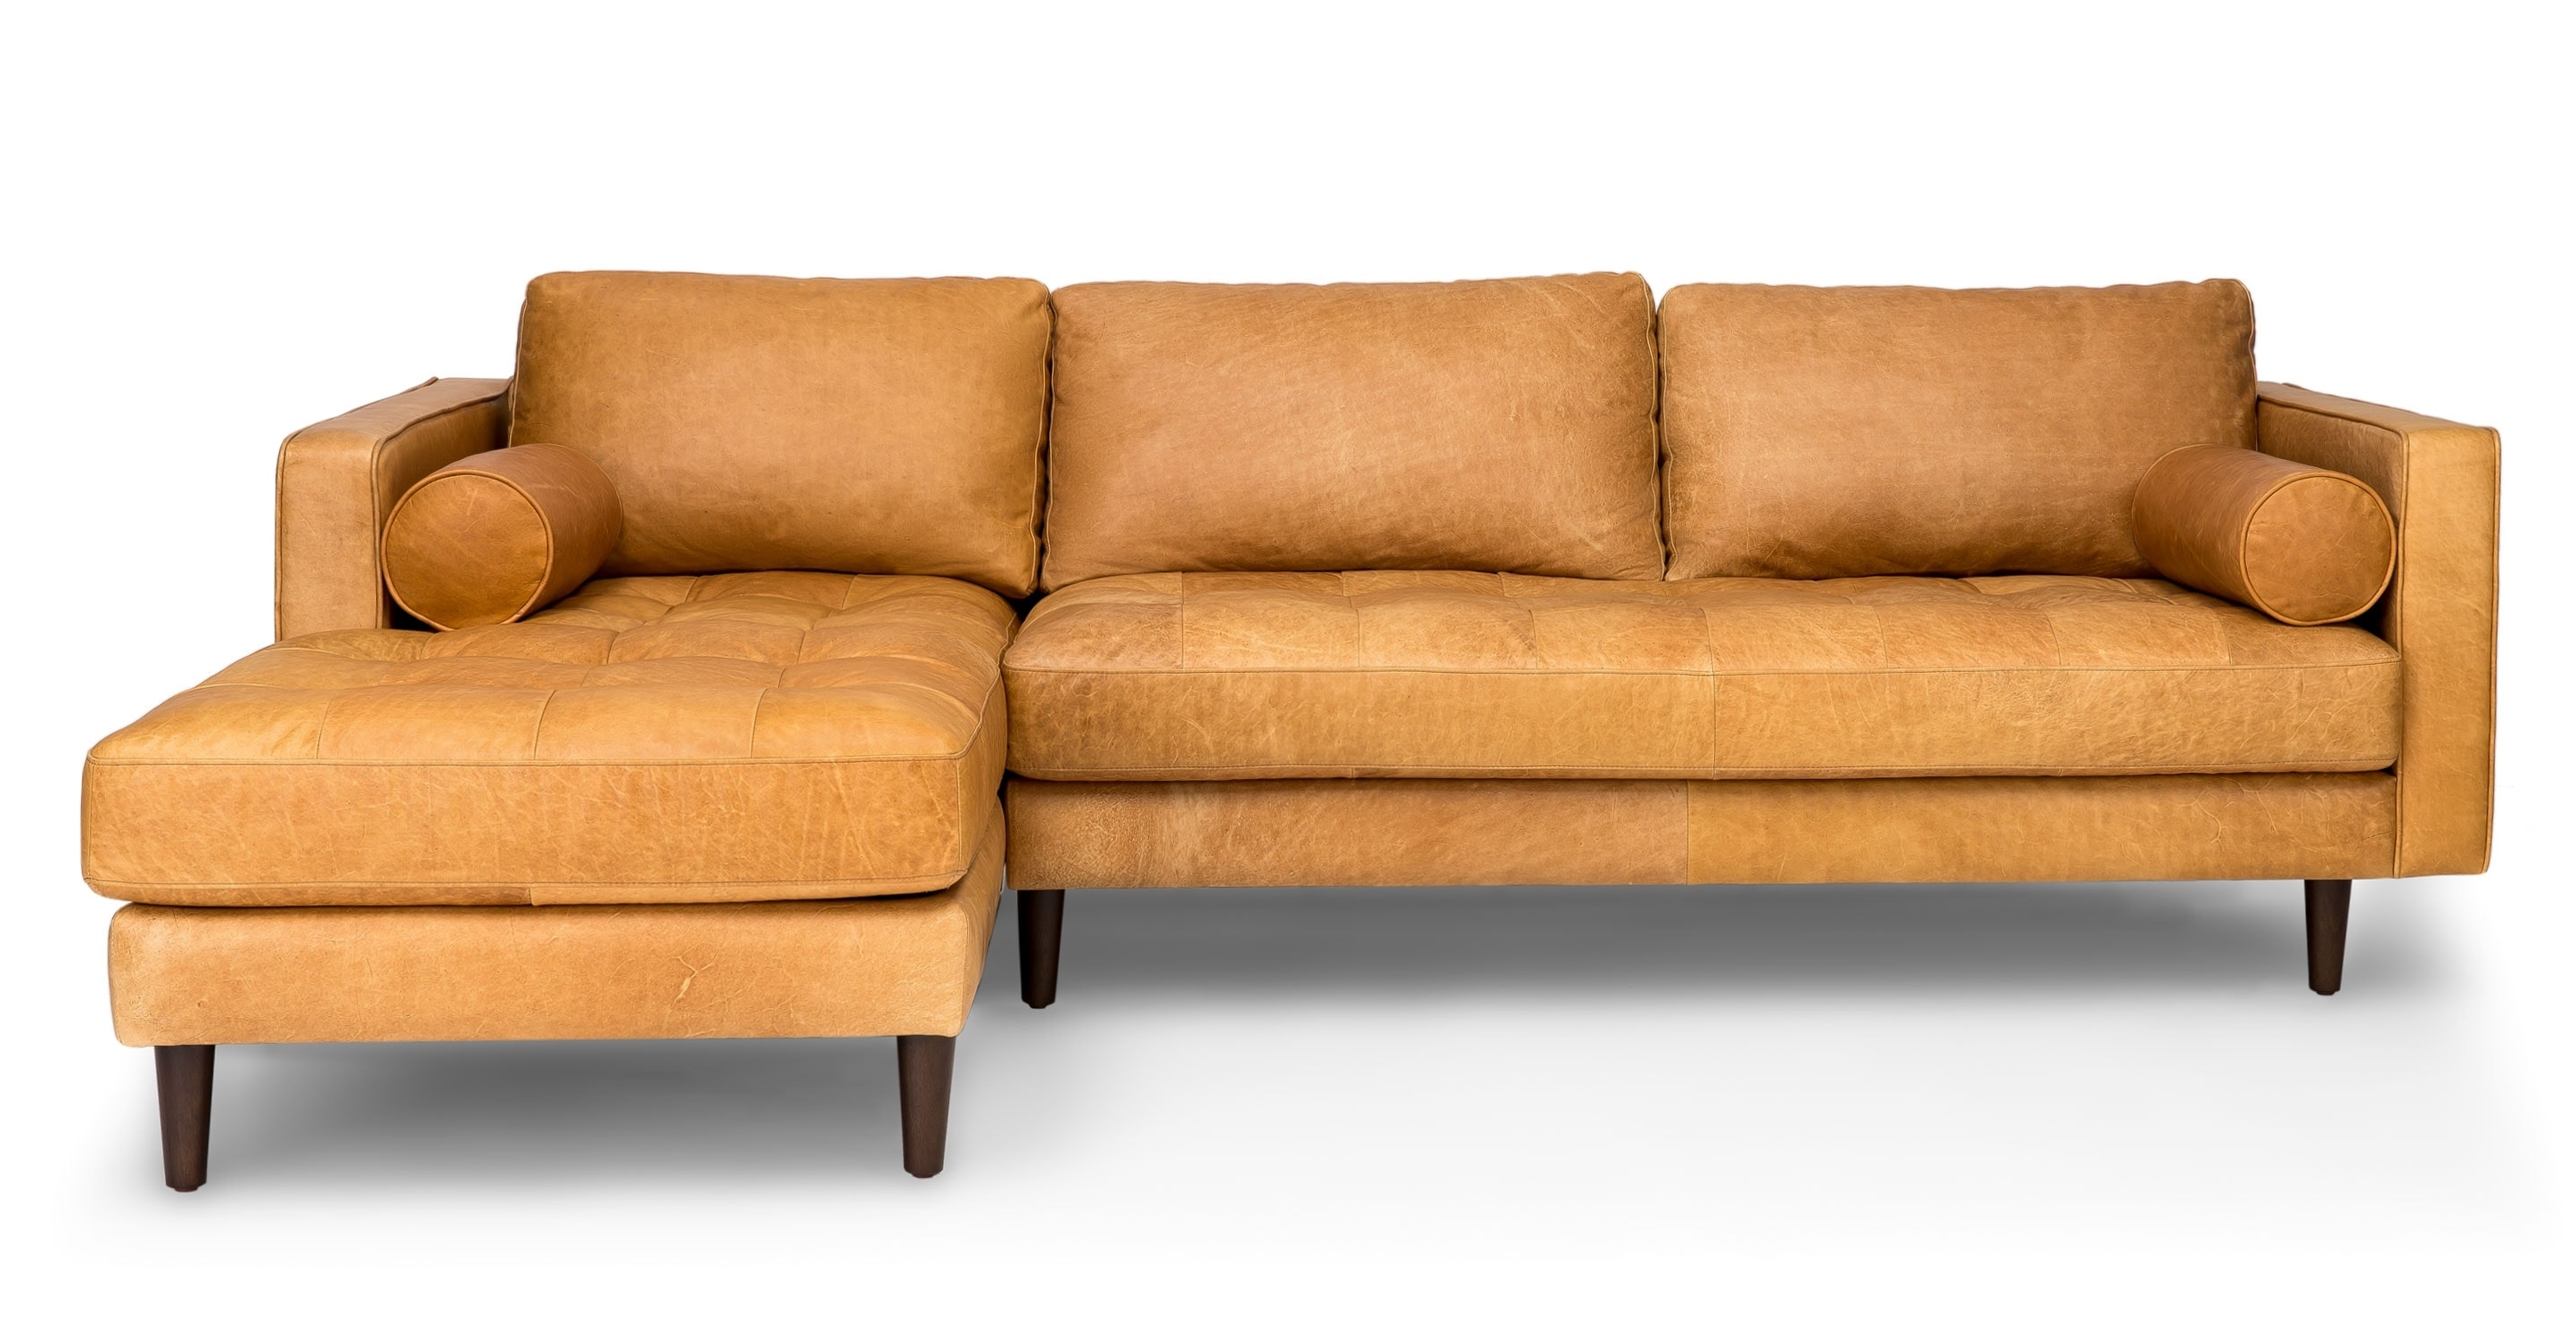 Favorite Nice Tan Leather Sofa For Home Decor Artistic Light Brown Leather Regarding Light Tan Leather Sofas (View 3 of 20)